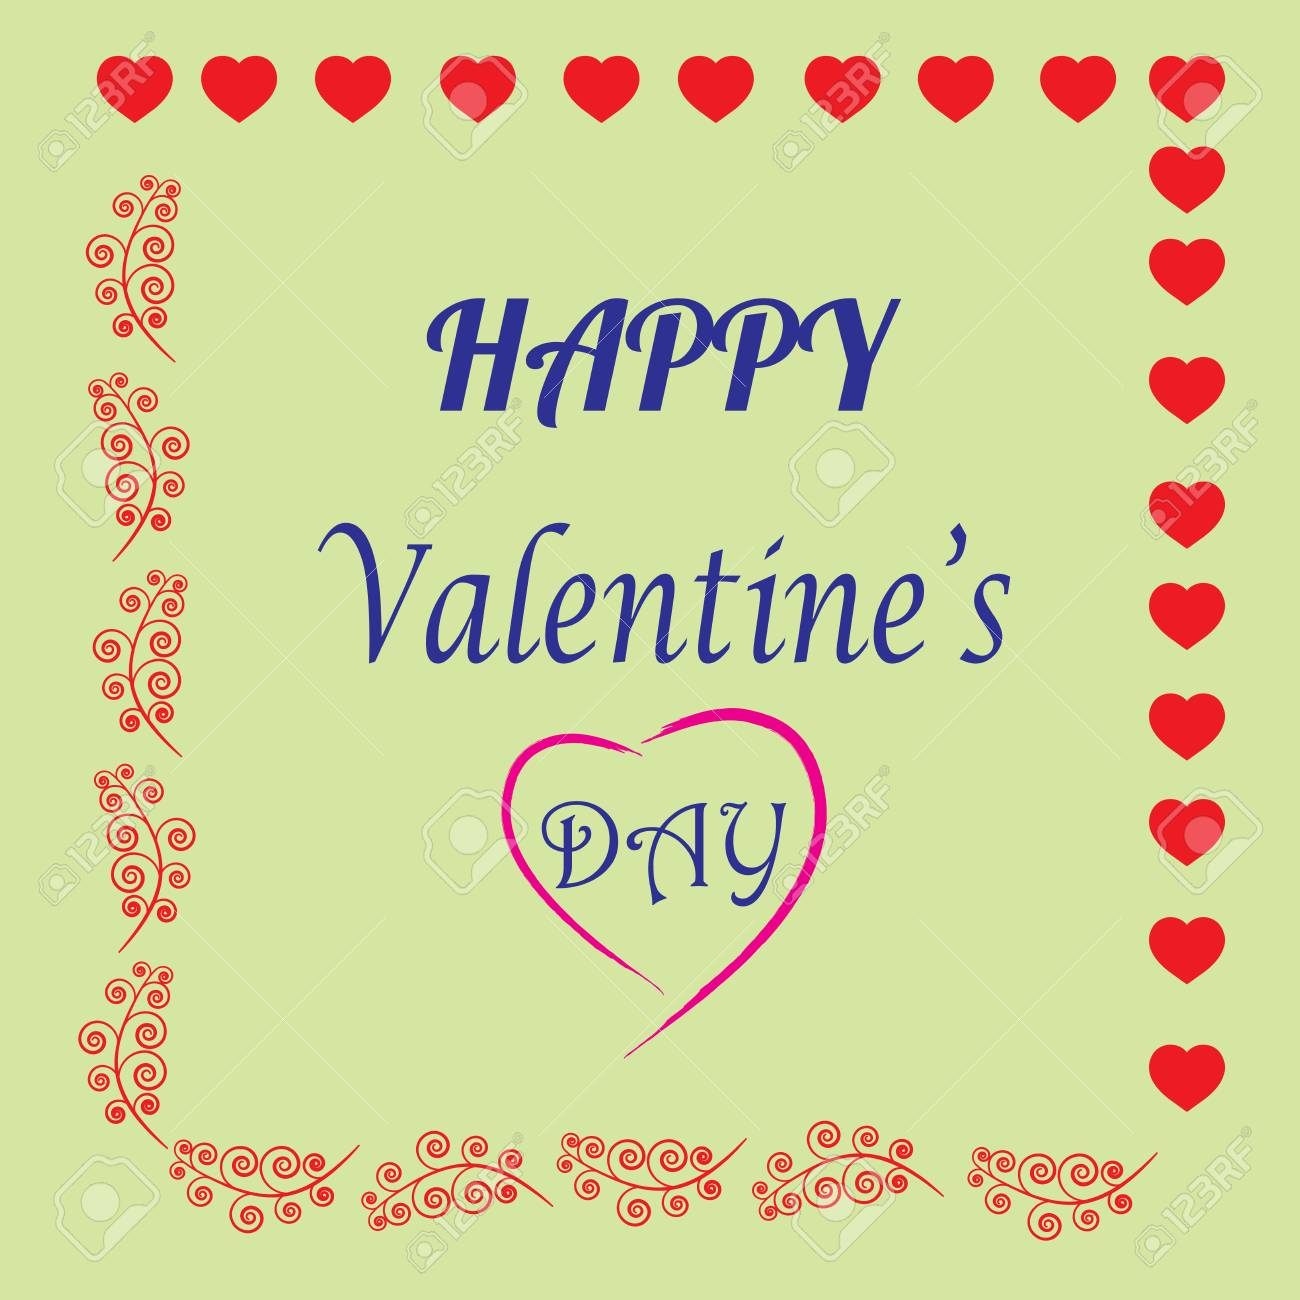 Valentines Day Card Romantic Mark In Frame And Greeting Heart